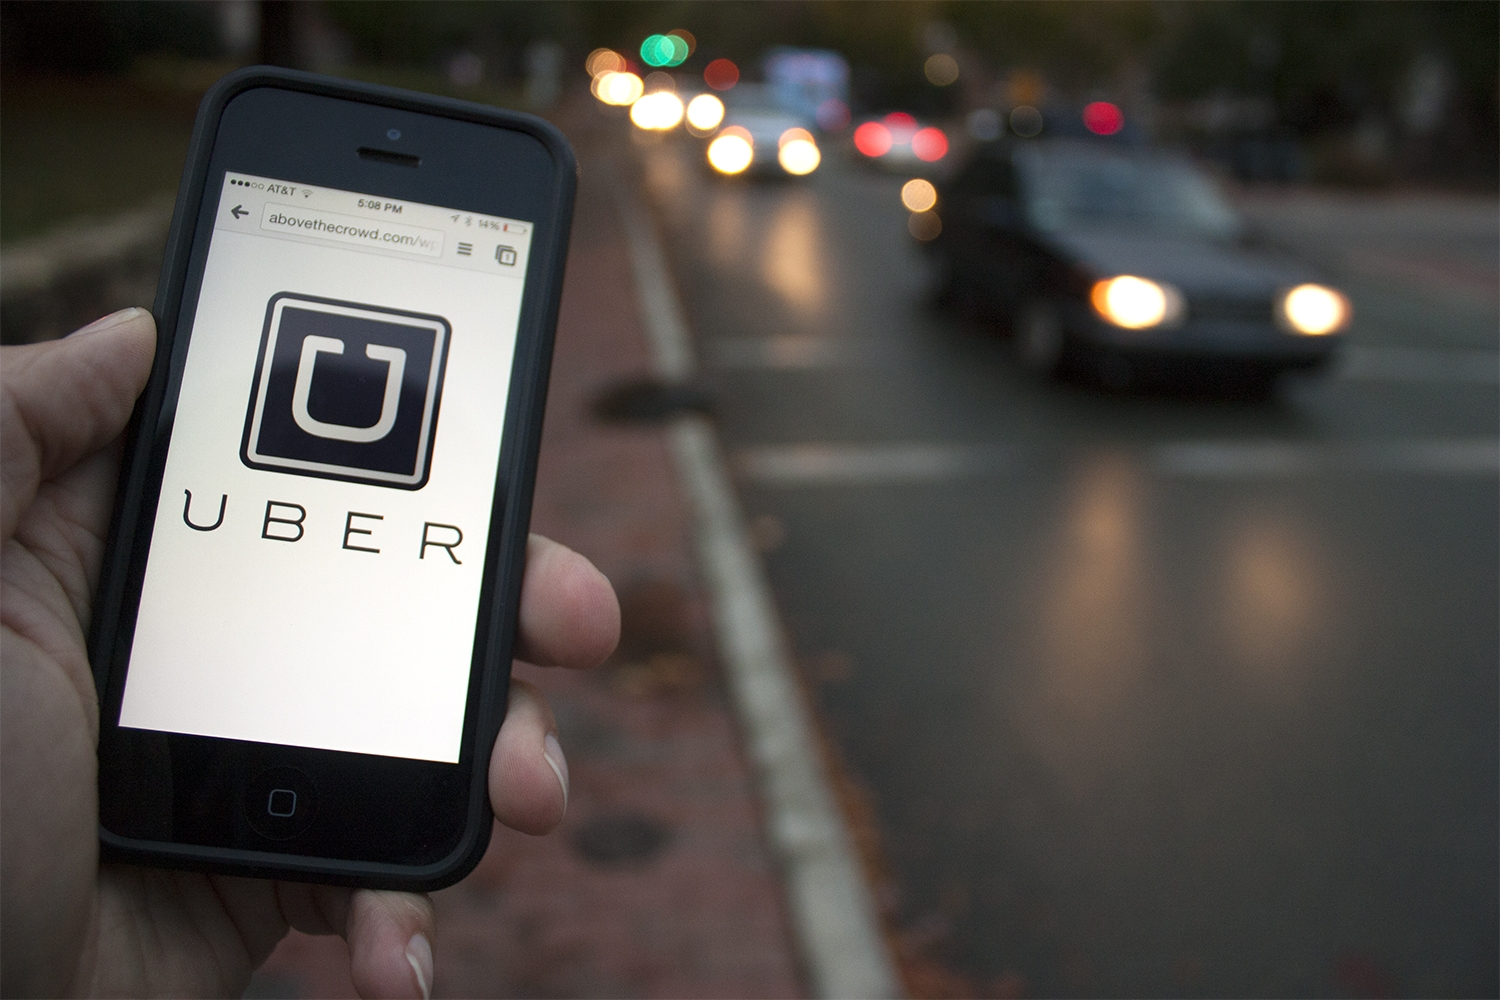 Uber makes changes to make drivers happy without raising fares